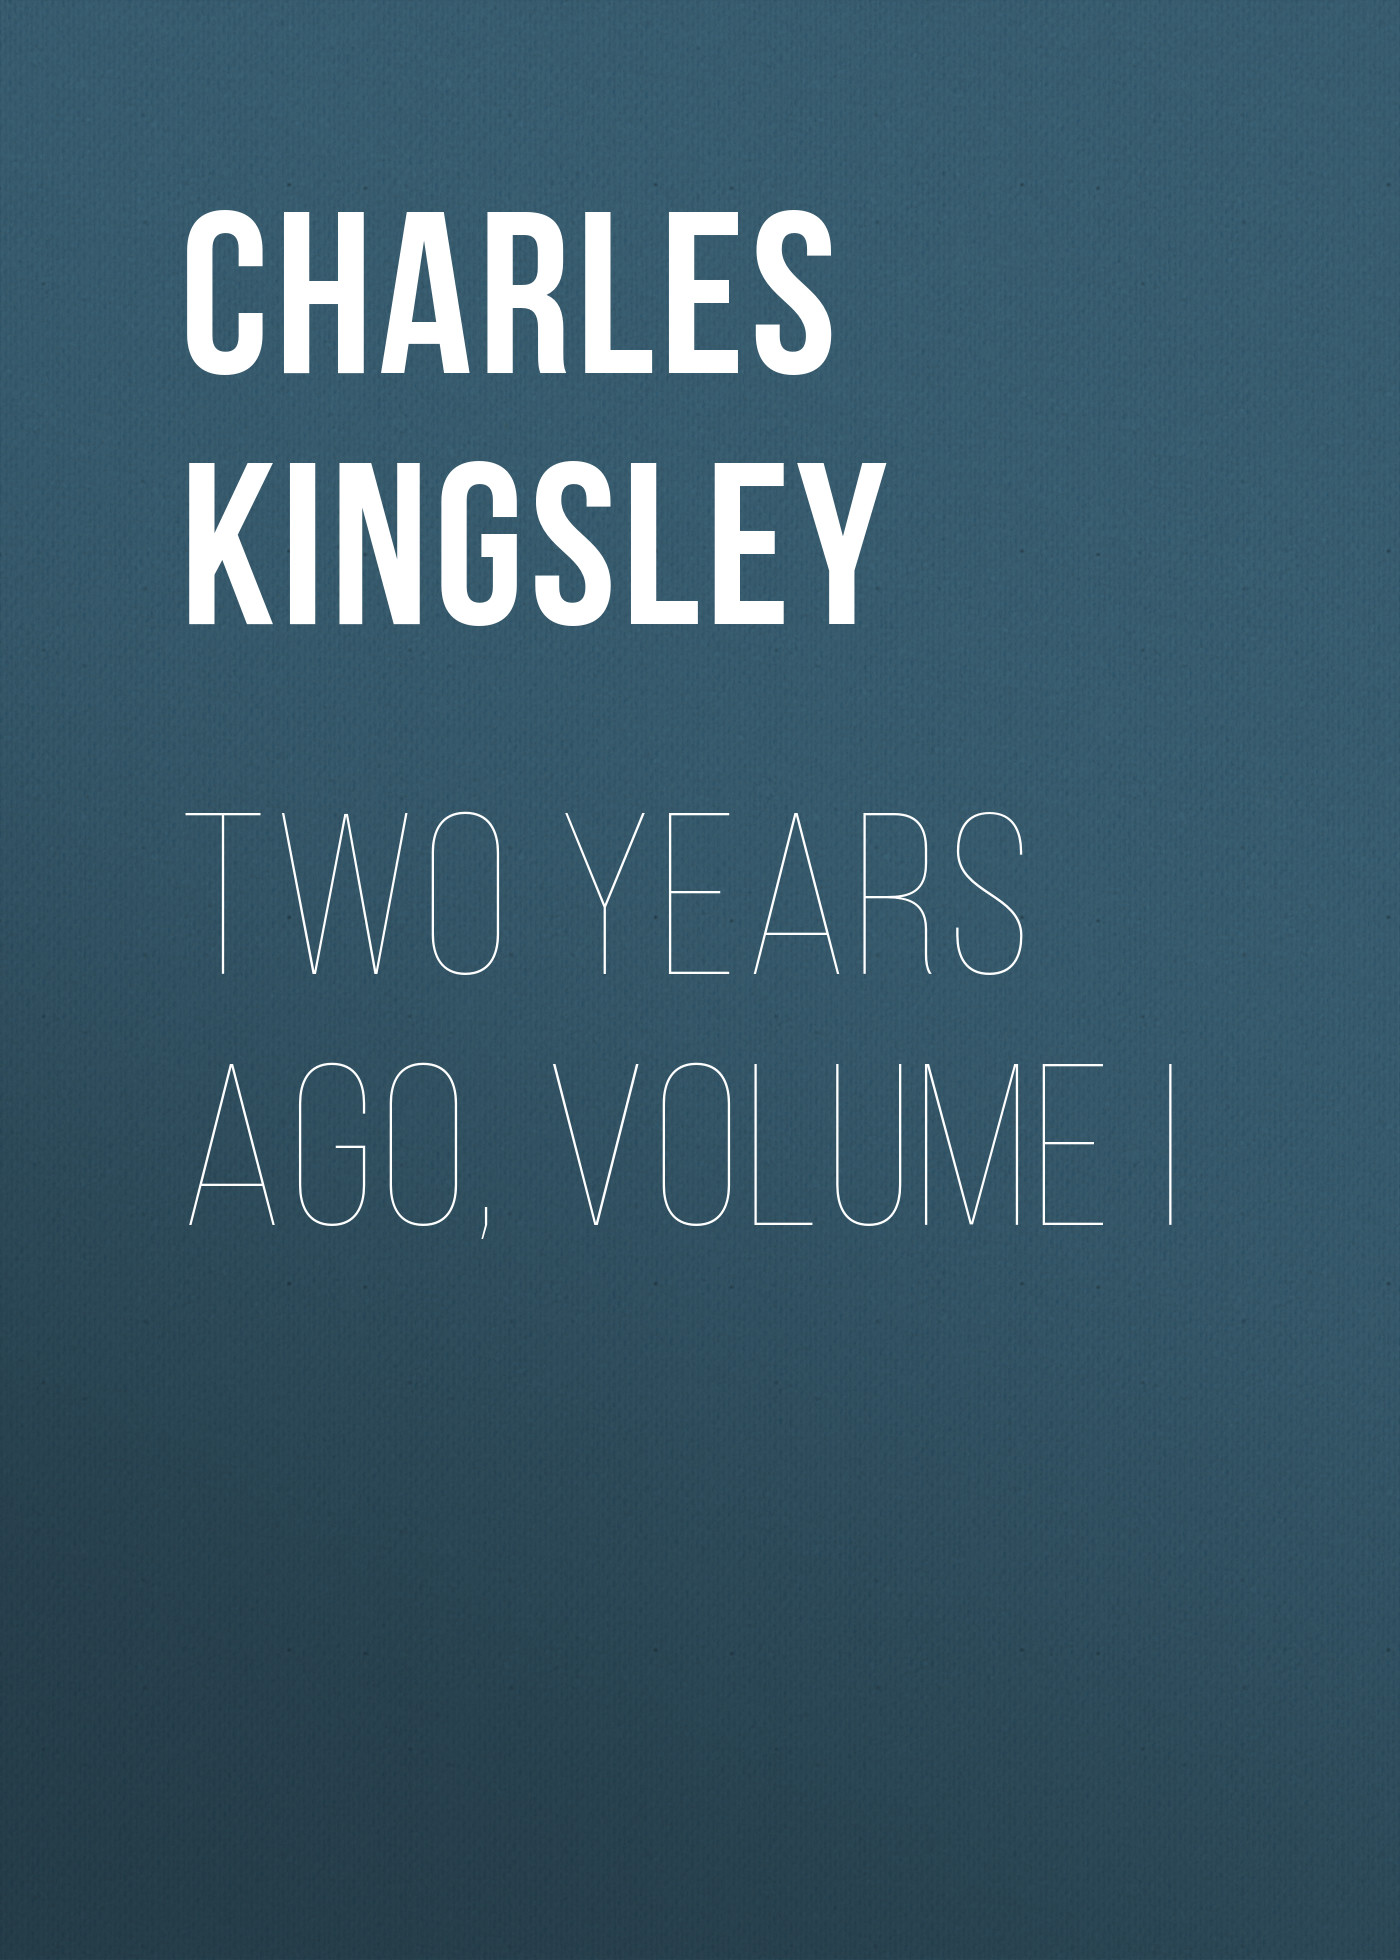 Charles Kingsley Two Years Ago, Volume I charles kingsley two years ago volume ii